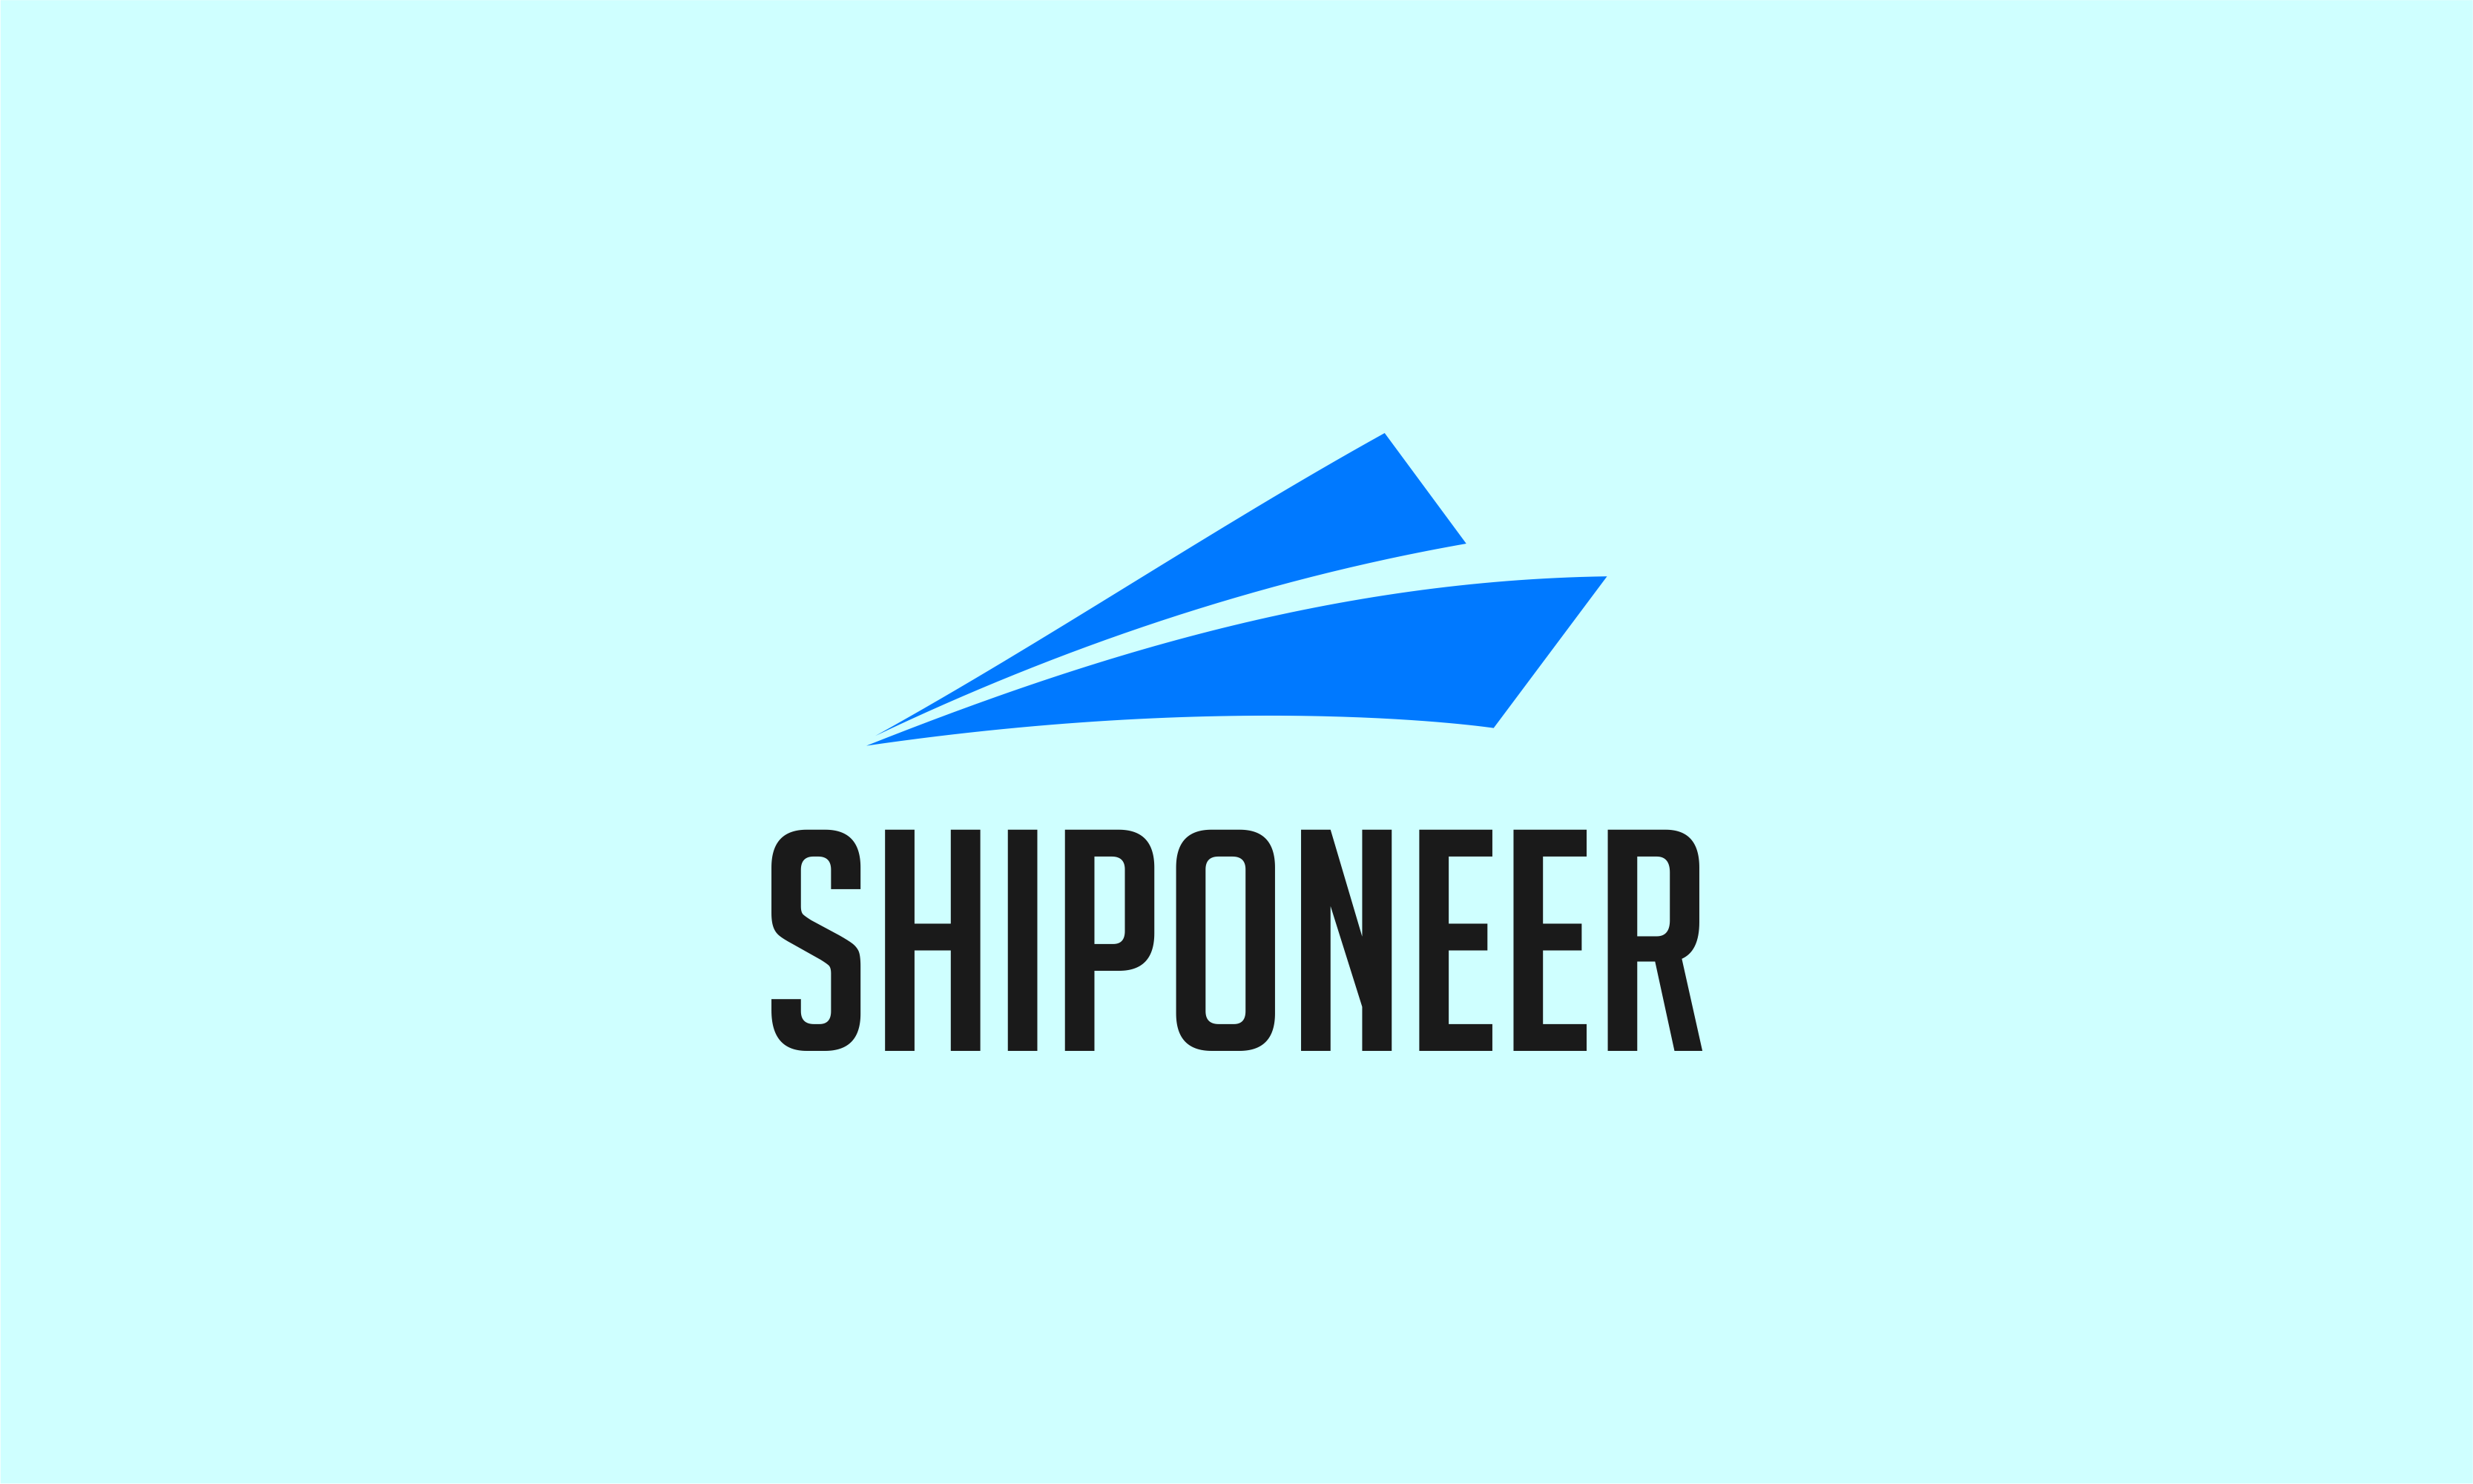 Shiponeer - Naval brand name for sale